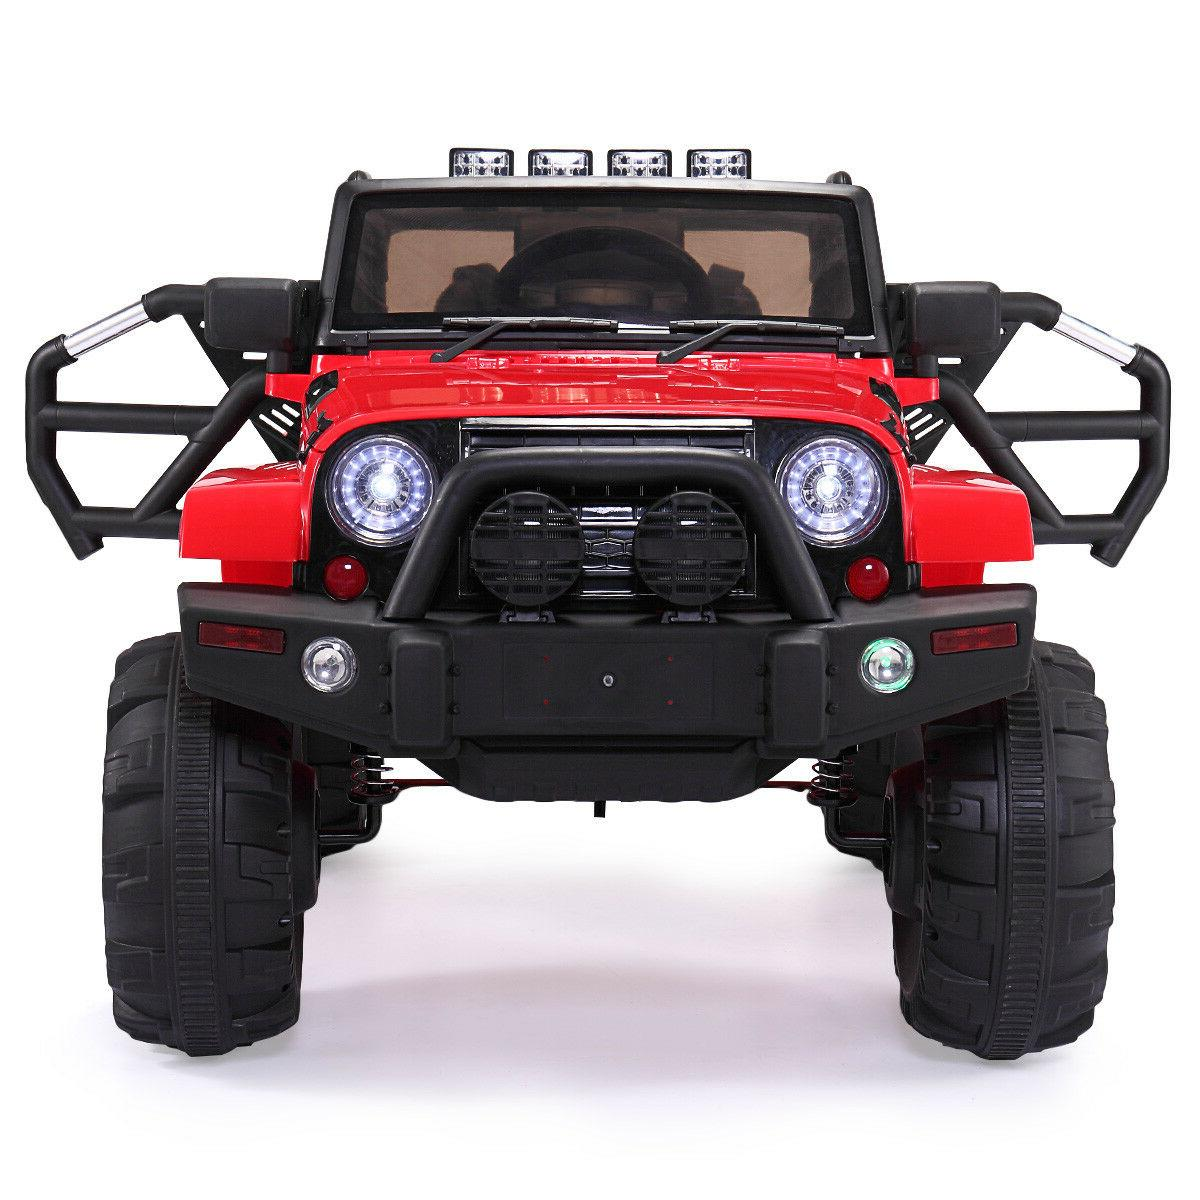 Red Electric 12V Kids Ride on Truck Car Battery, Remote